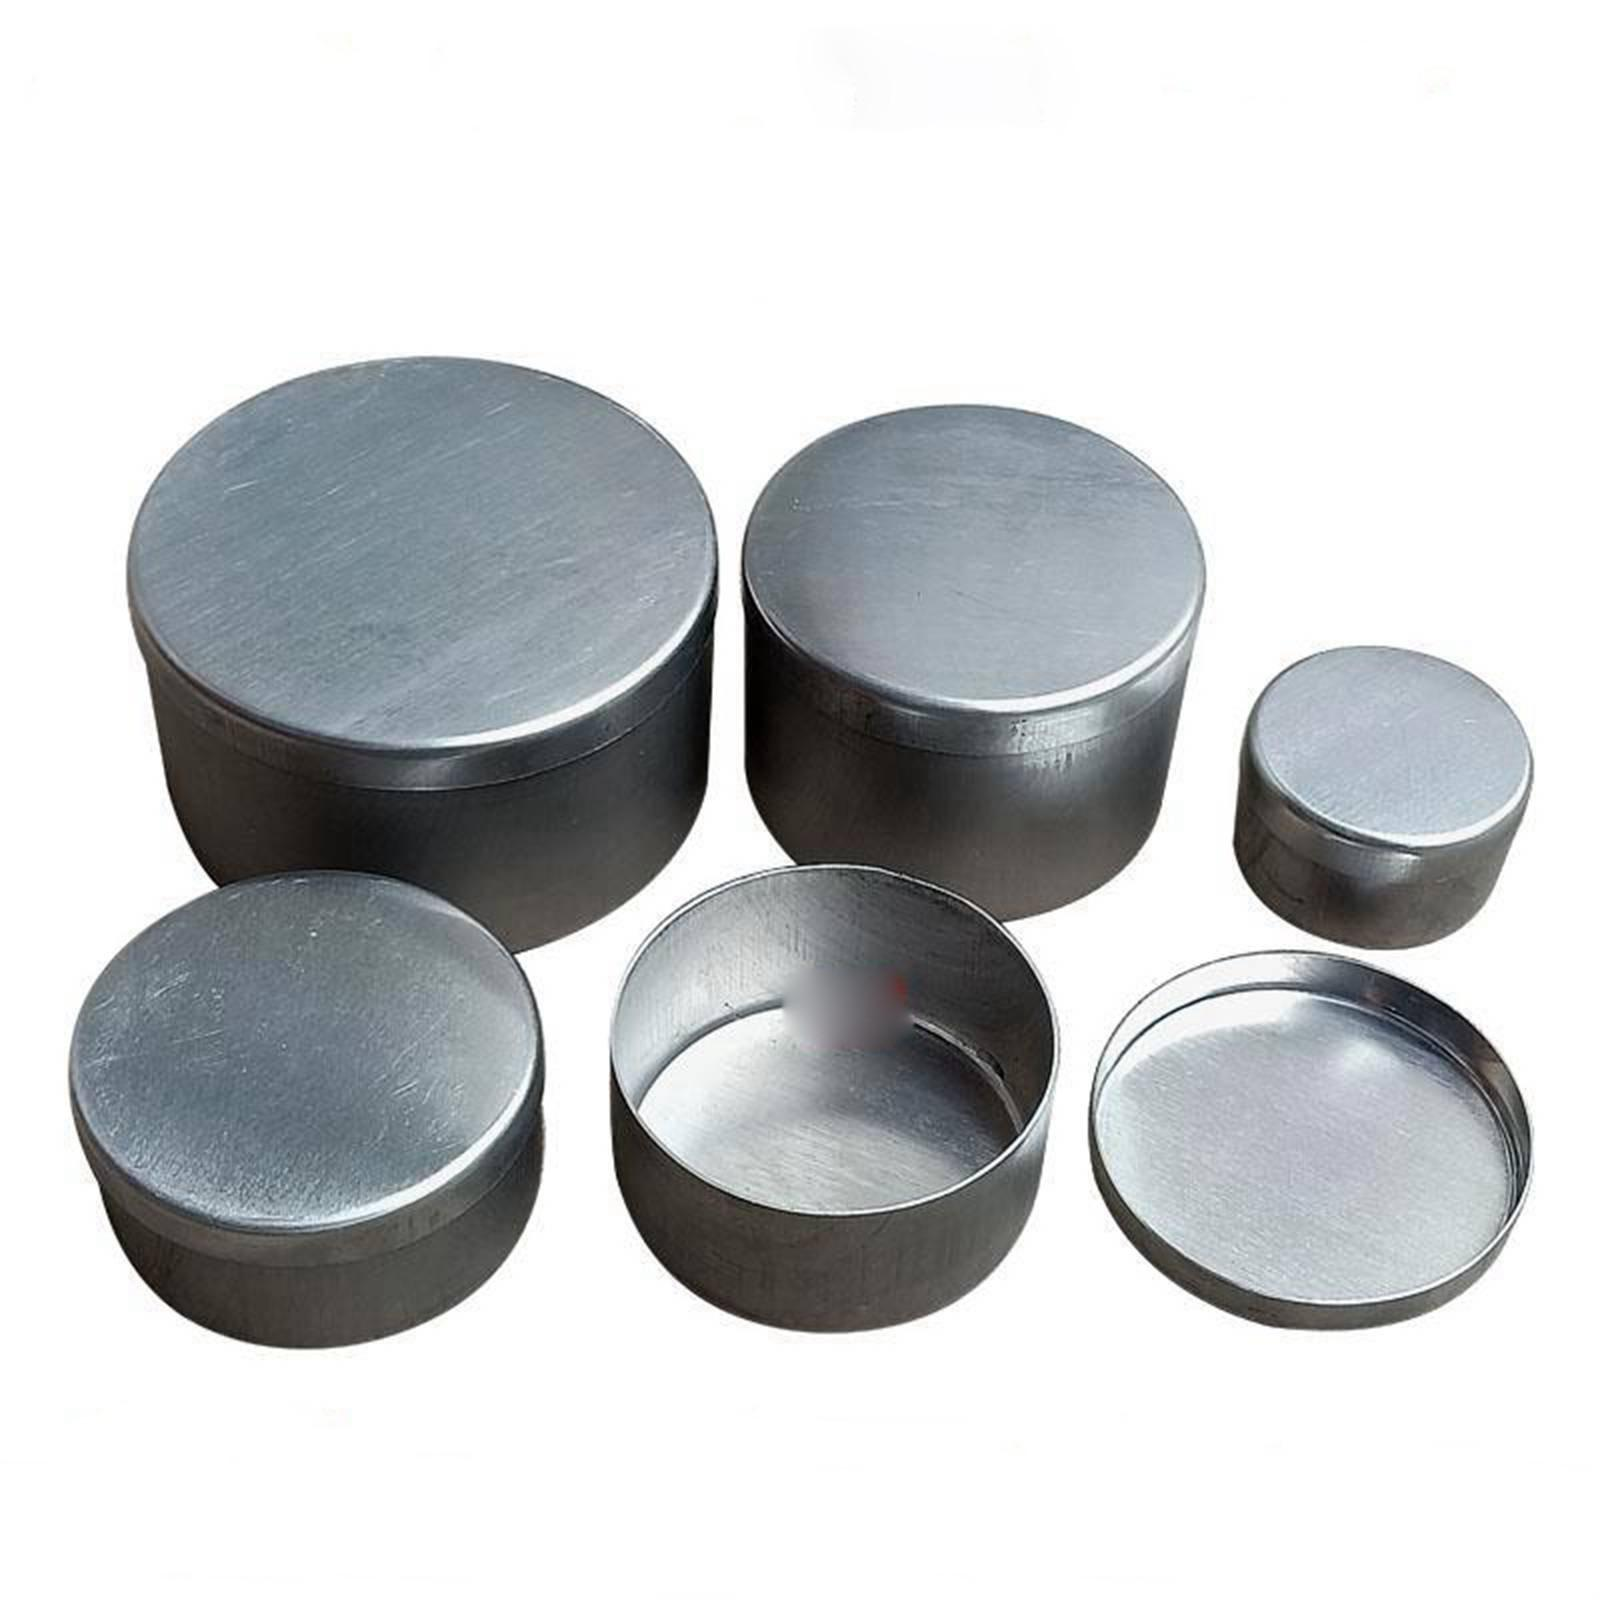 Aluminium  O/D 40mm To 100mm Height 25mm To 55mm Soil Weighing And Moisture Measuring Box Can Lab